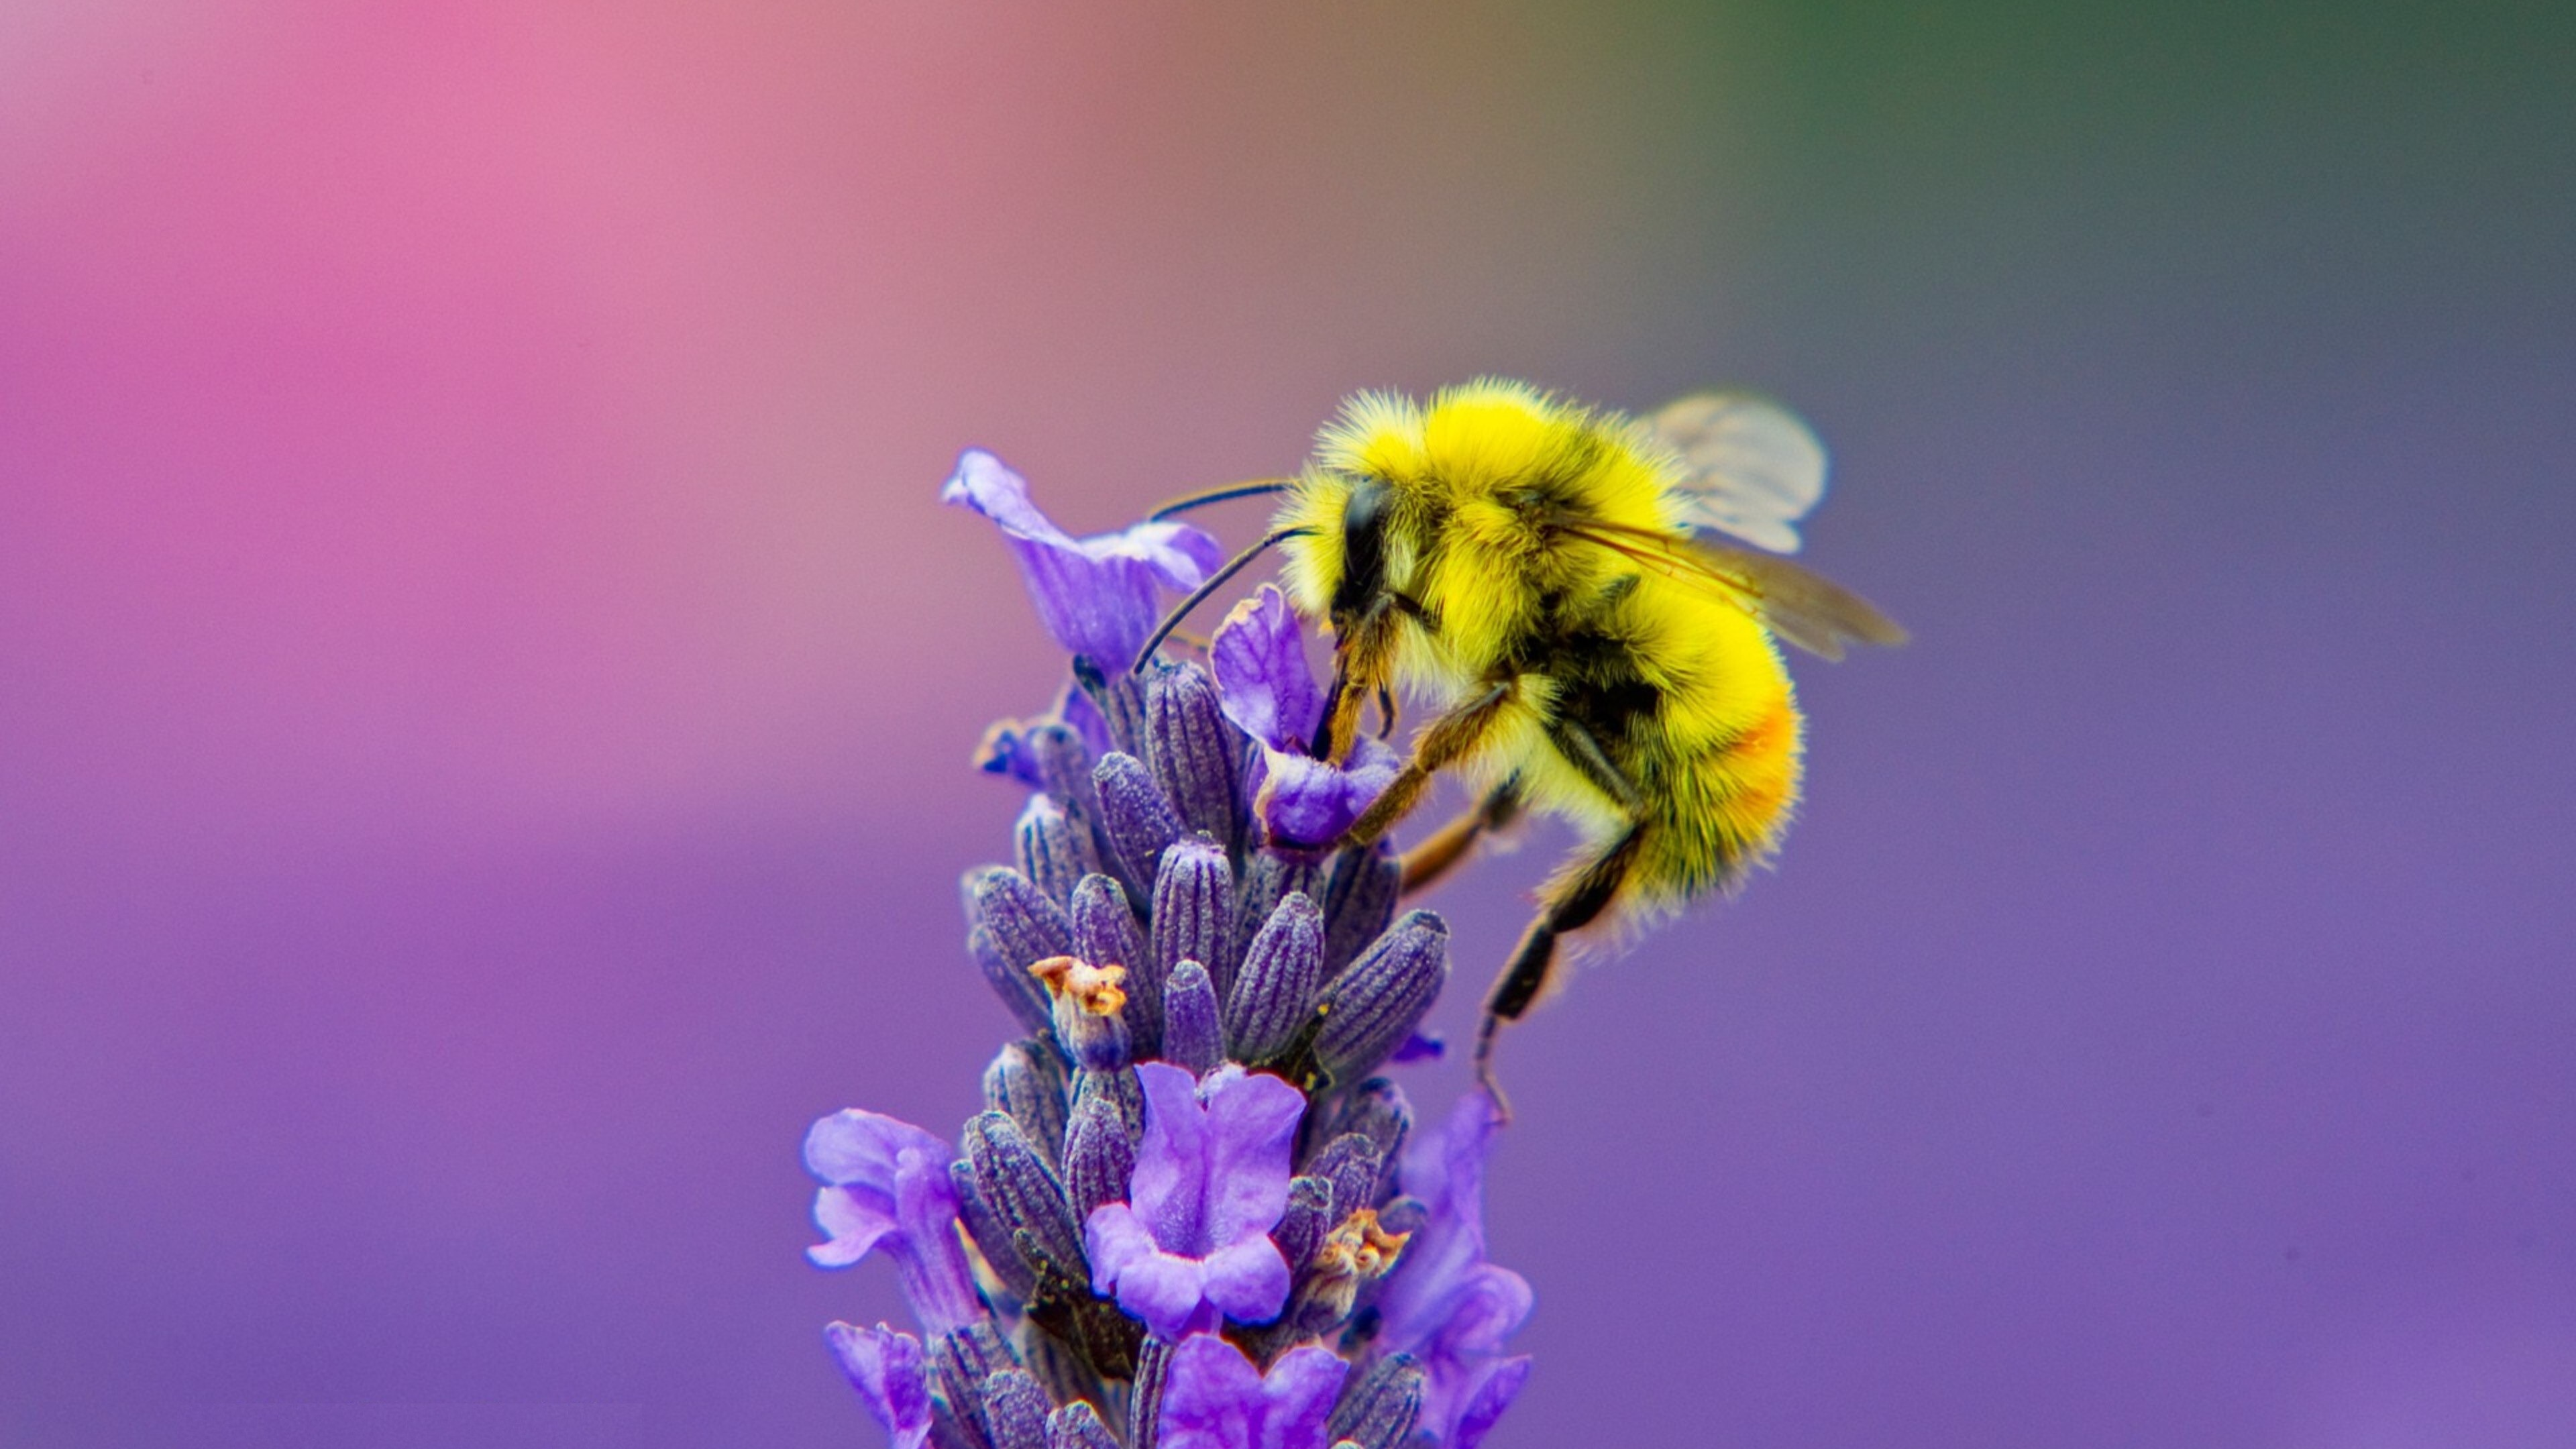 Yellow Honey Bee On Lavender 4k Photo Hd Wallpapers